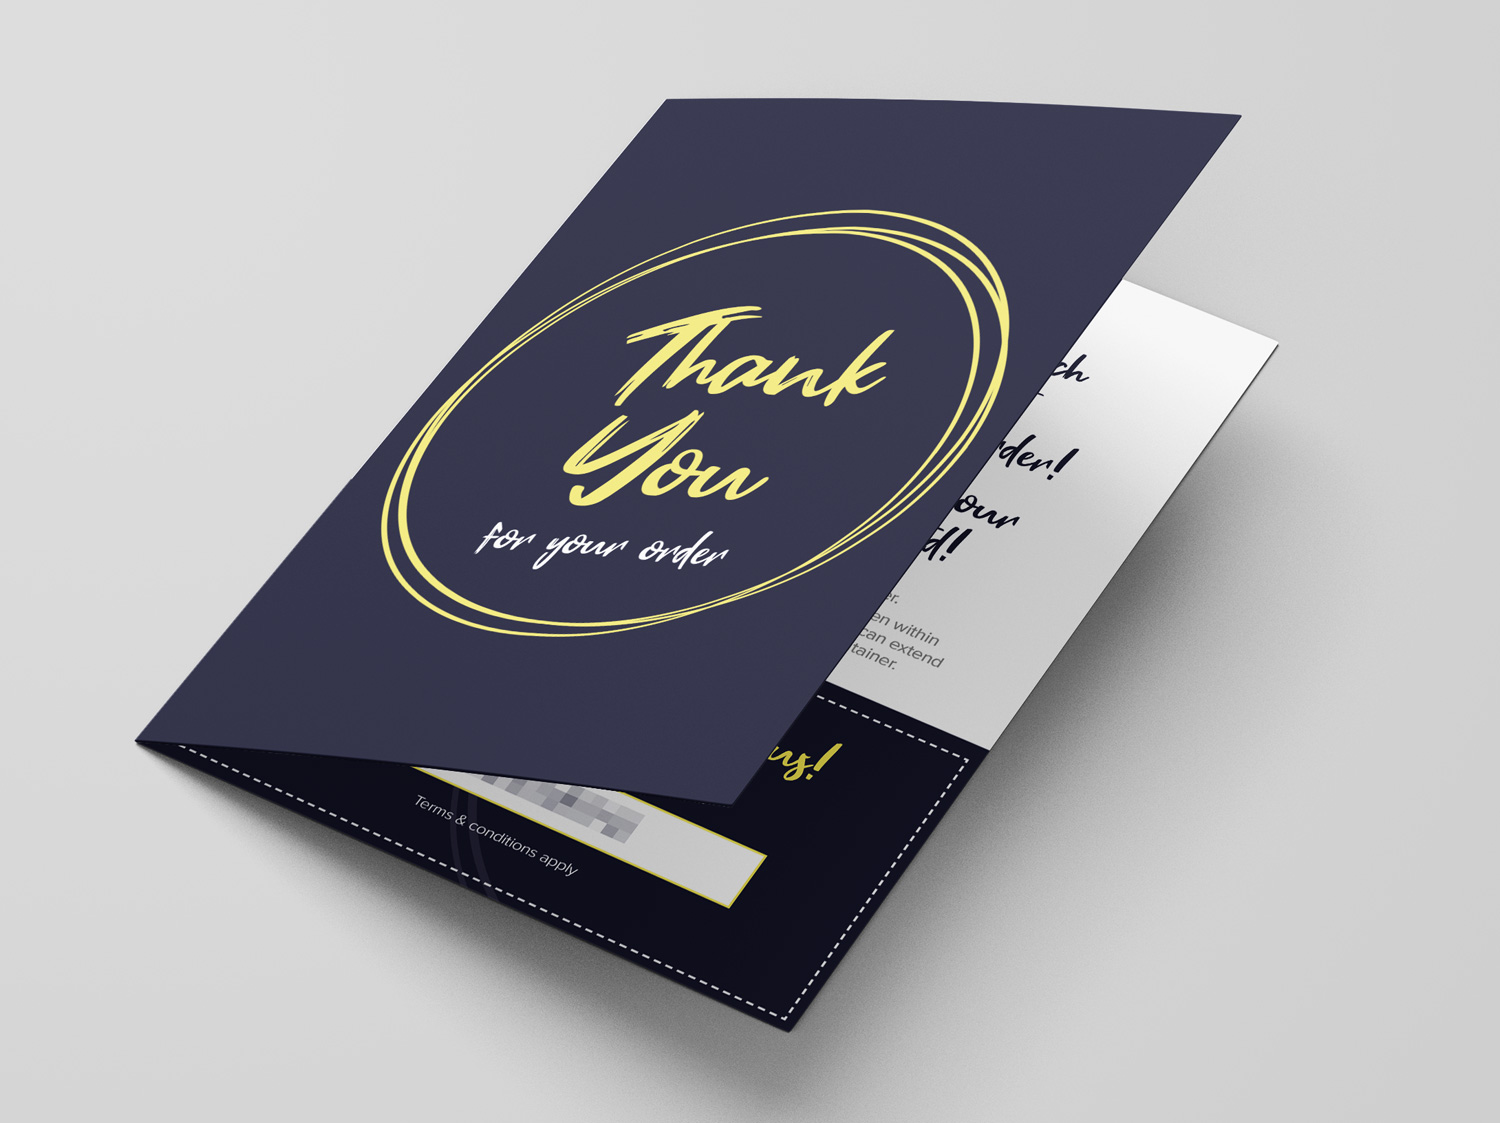 Thank You For Your Order Card for Chocobelle - by My Name is Dan